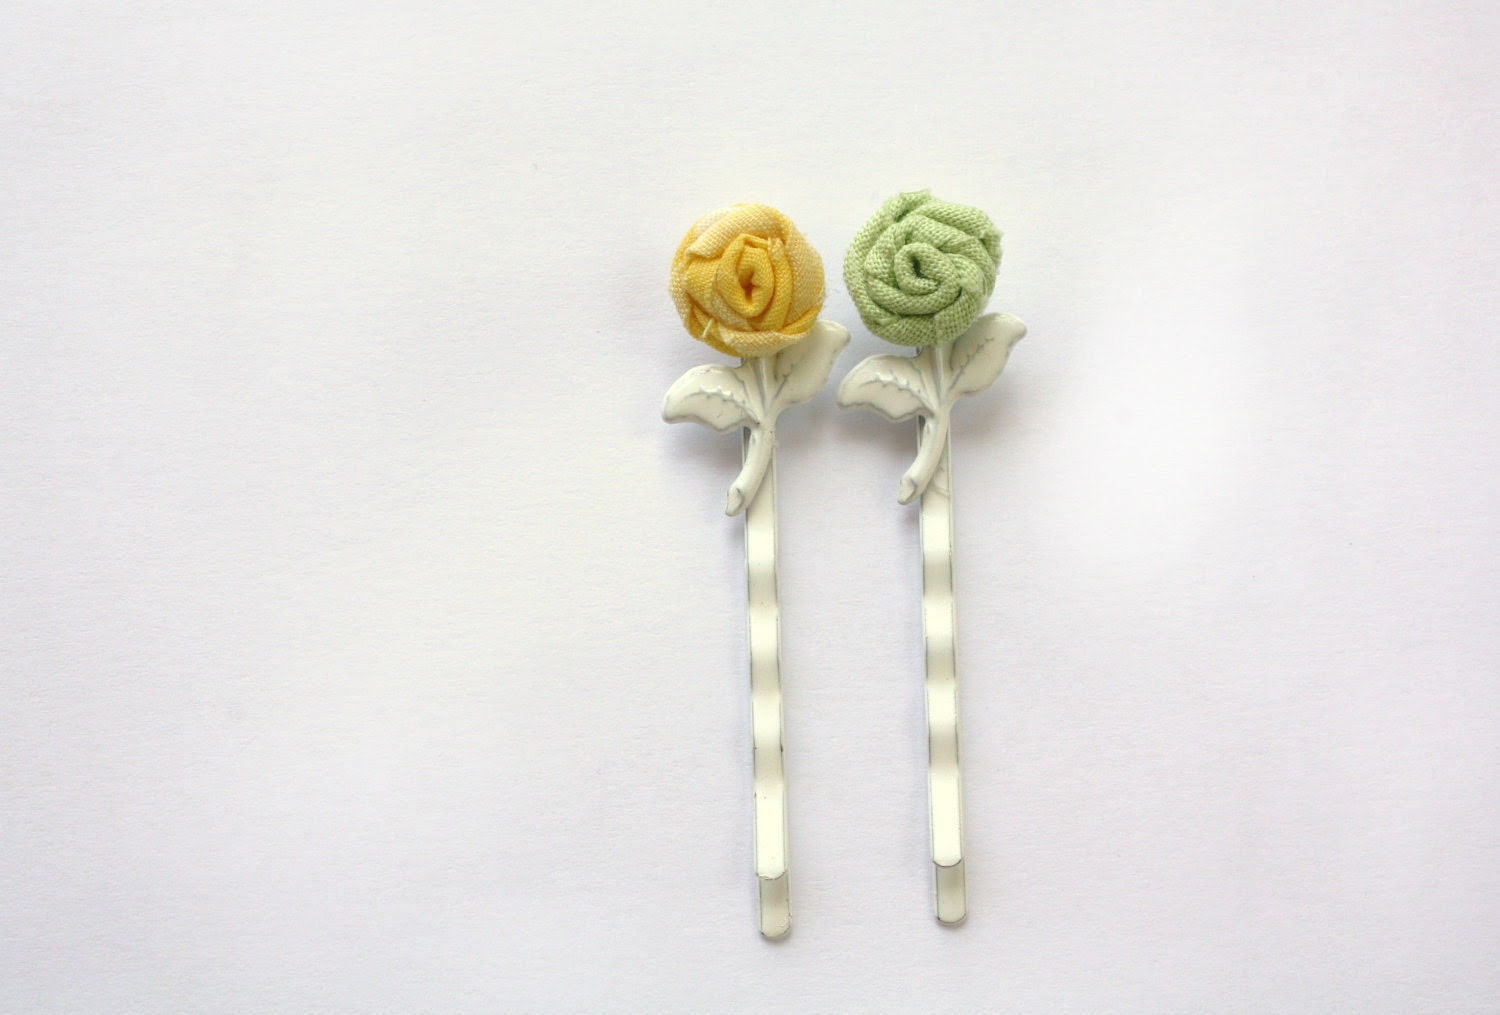 Tiniest Rose Bobby Pin Set- Yellow and Green Fabric Roses on White Metal Bobby Pins with Leaves